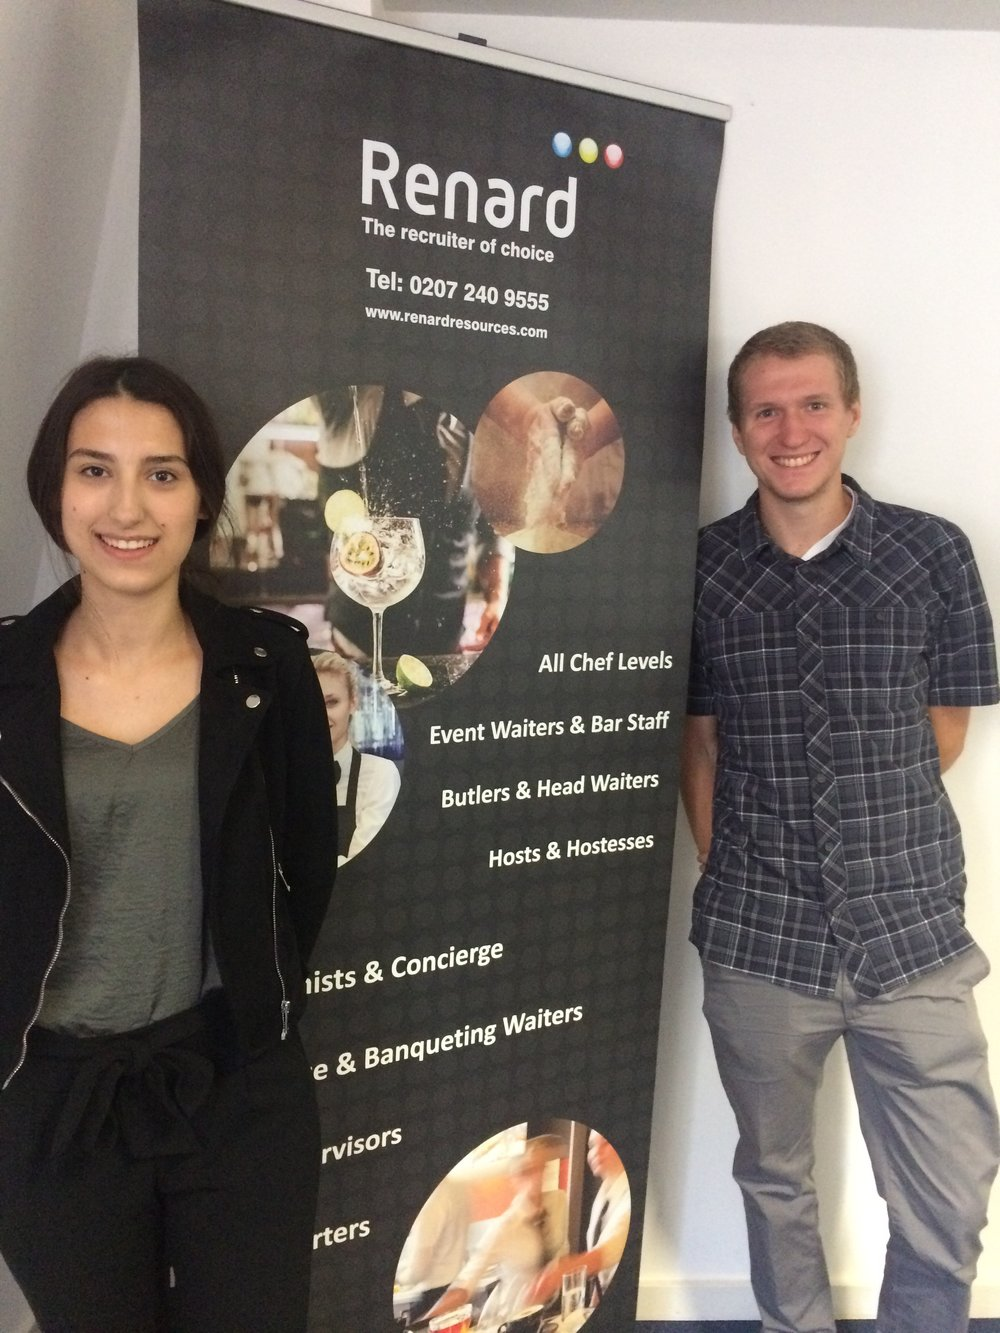 Tatjana and her classmate Clemens at Renard Resources.